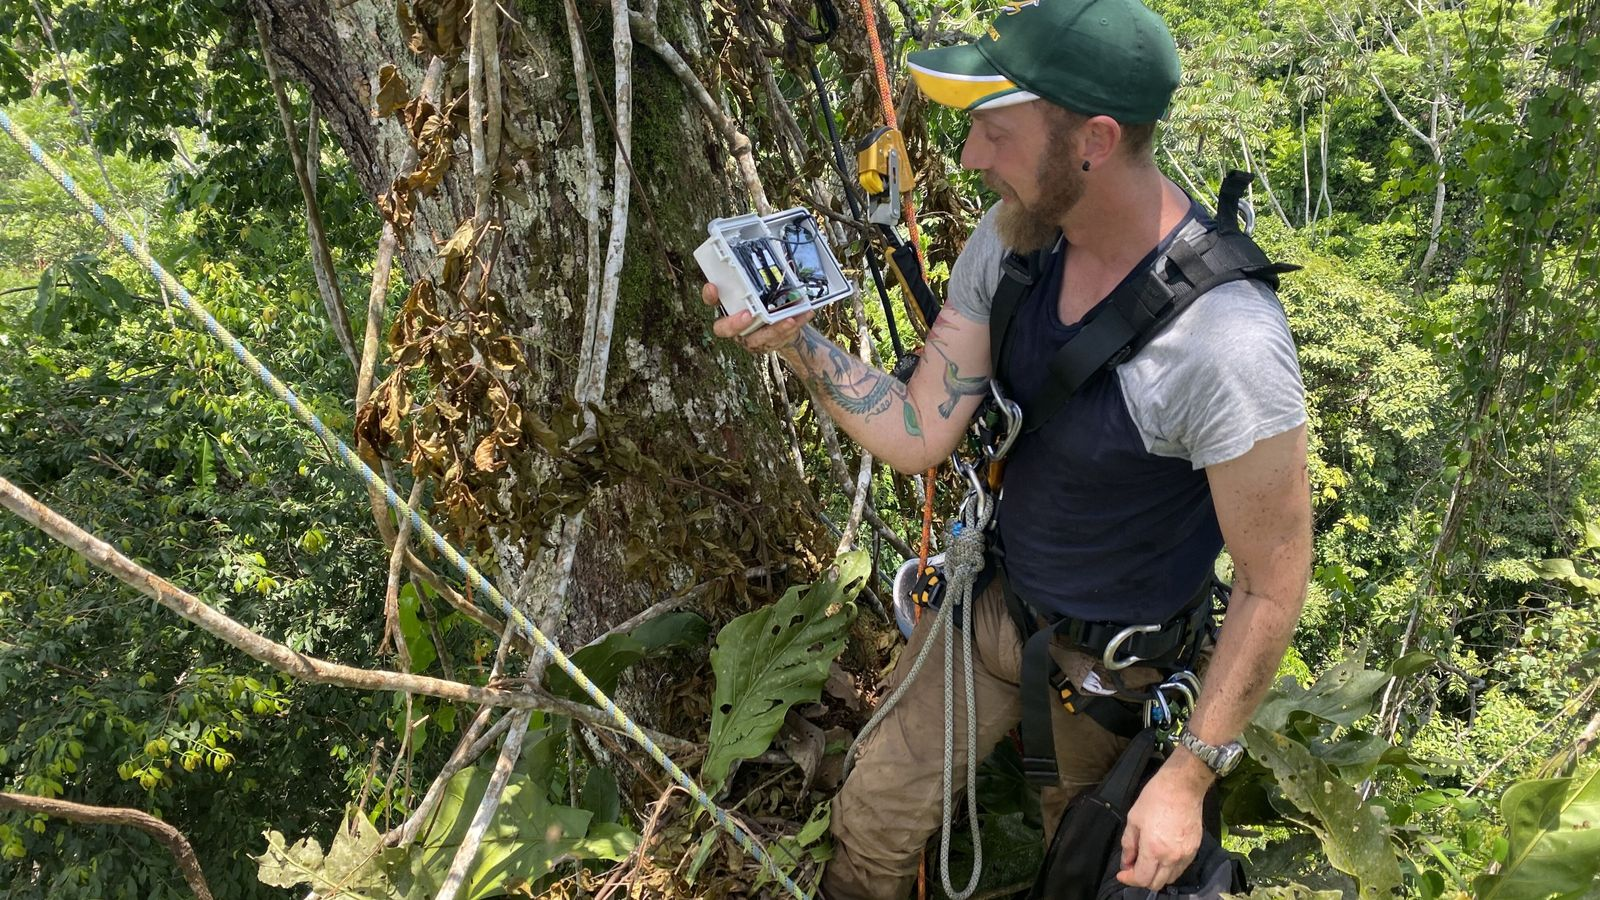 National Geographic Explorer Andy Whitworth and a rainforest camera trap. Hear more about Andy's conservation work ...